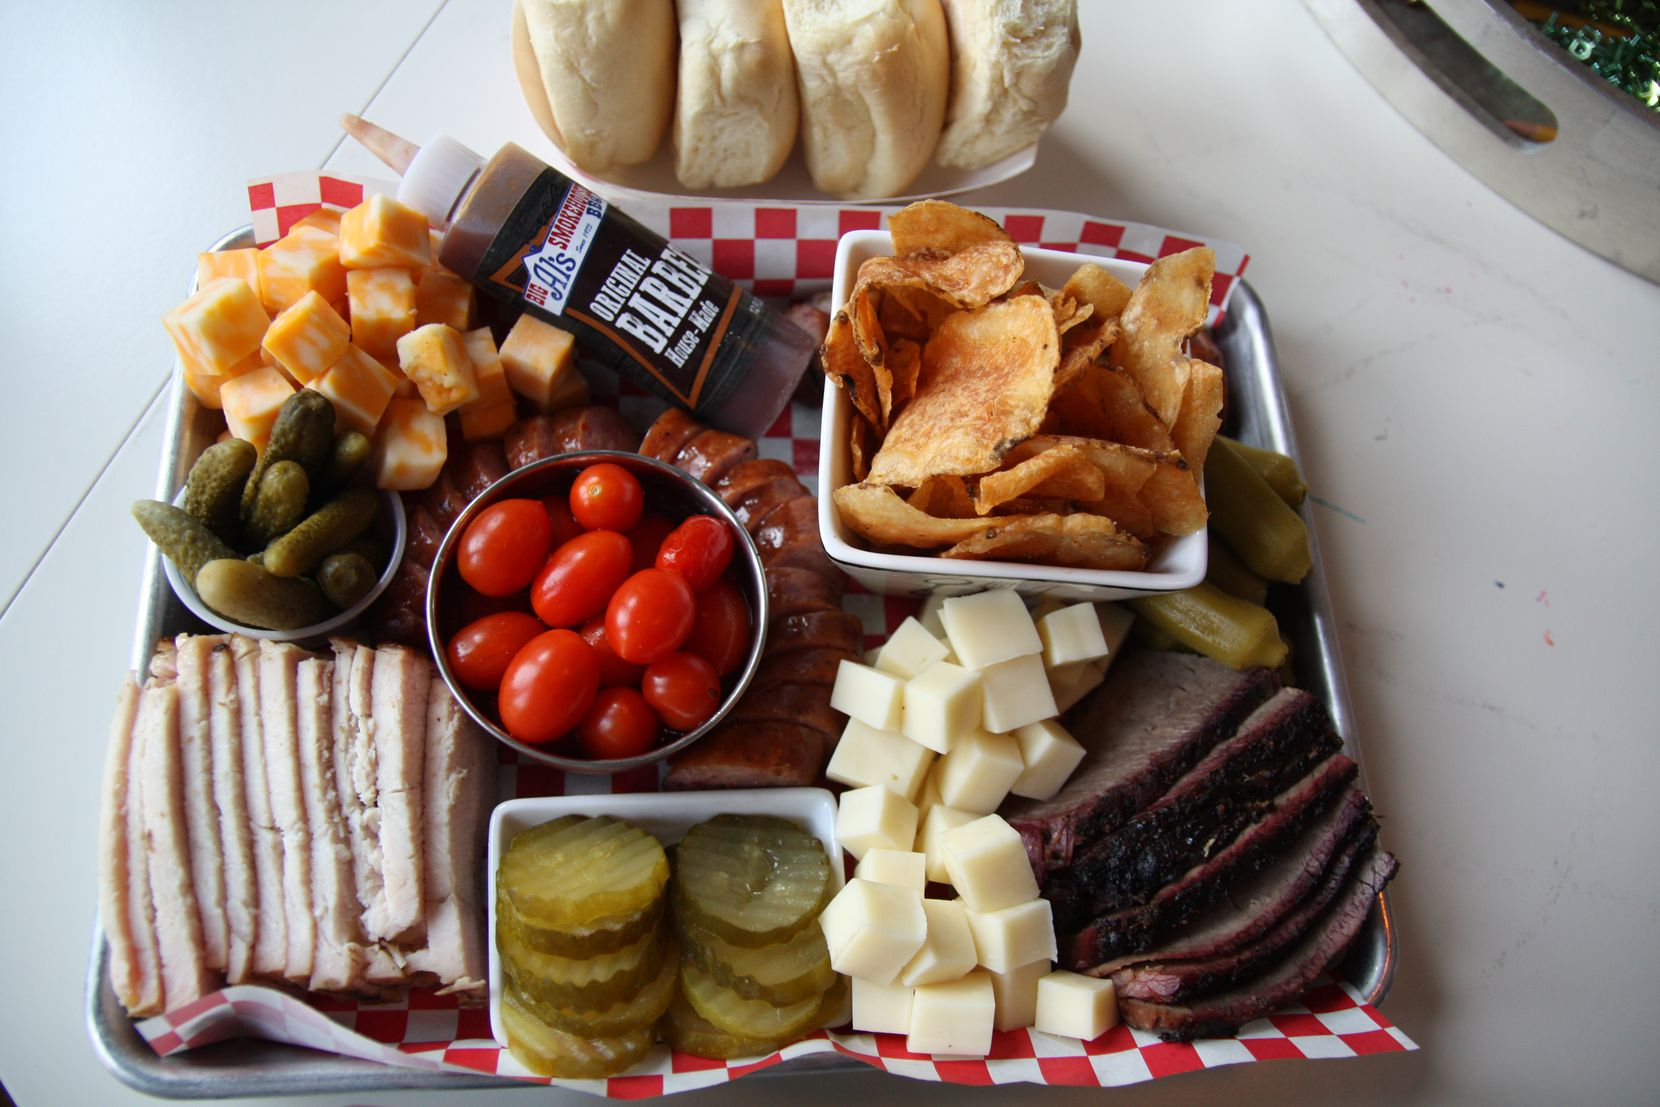 For the holidays this year, Big Al's offers a $65 barbecue charcuterie board that includes chips, pickled okra, pickles, smoked meats, cheese assortments, deviled eggs and barbecue sauce.